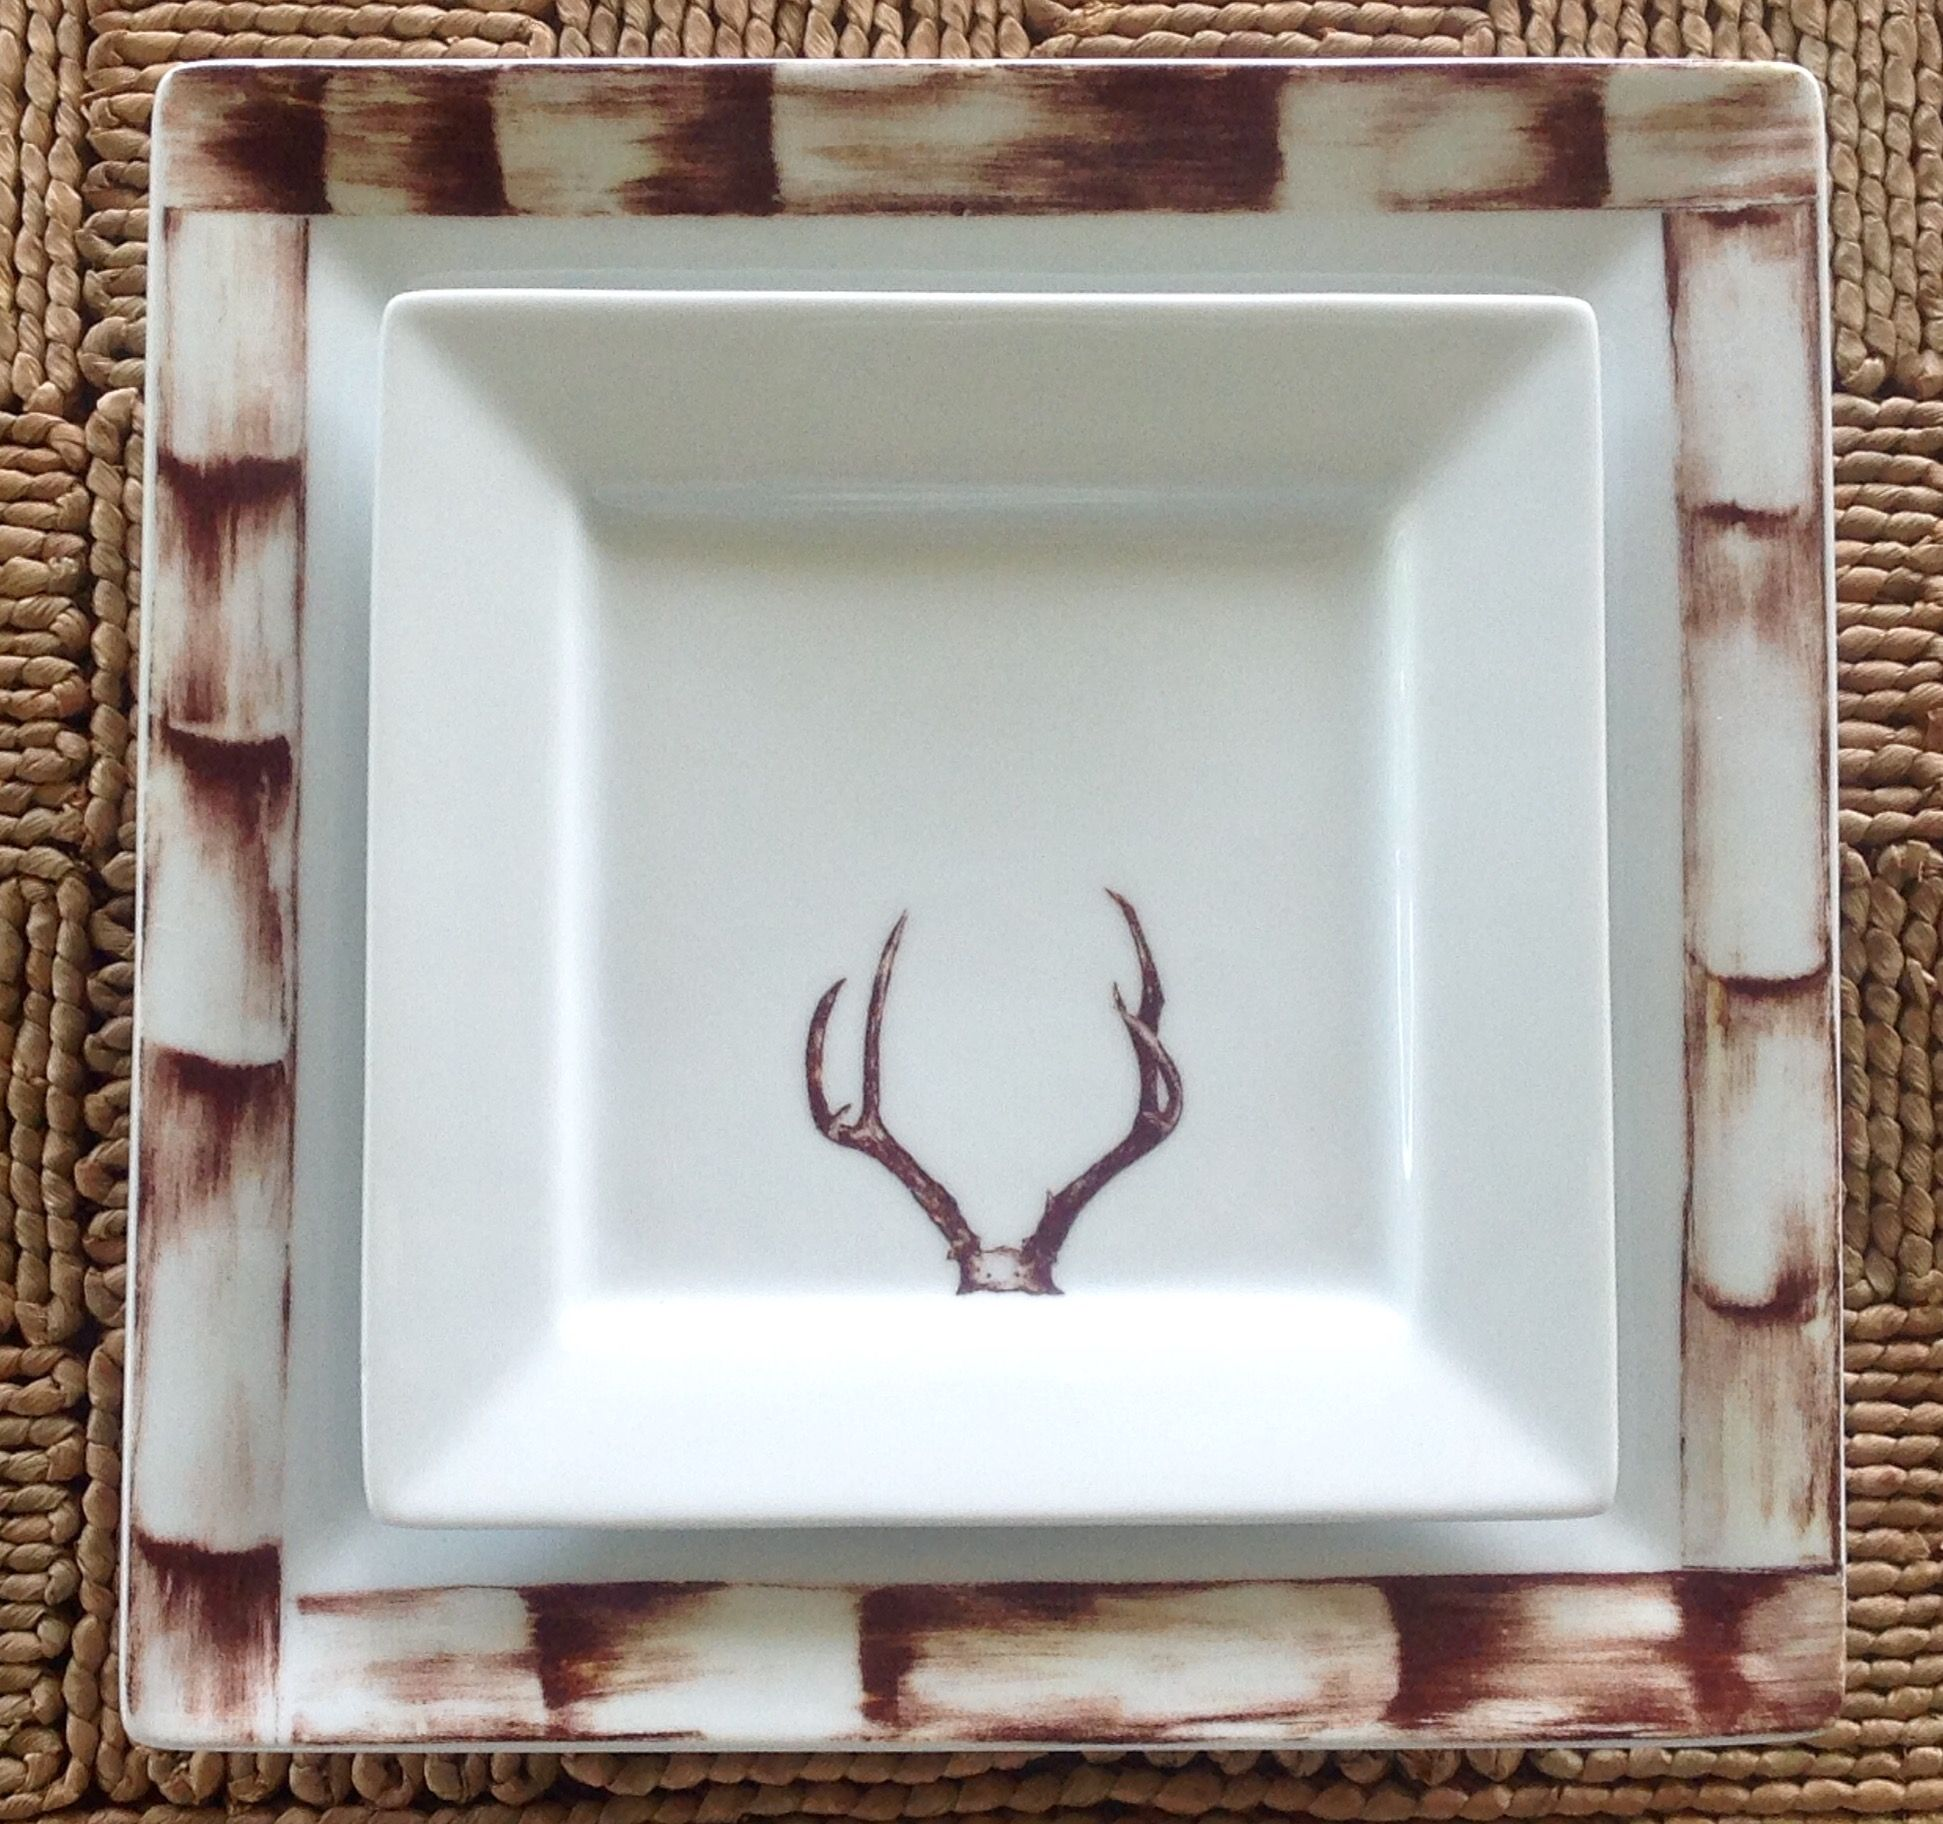 Bamboo Square Dinner Plate Antler Square Salad Plate & Bamboo Square Dinner Plate Antler Square Salad Plate | Dinnerware ...